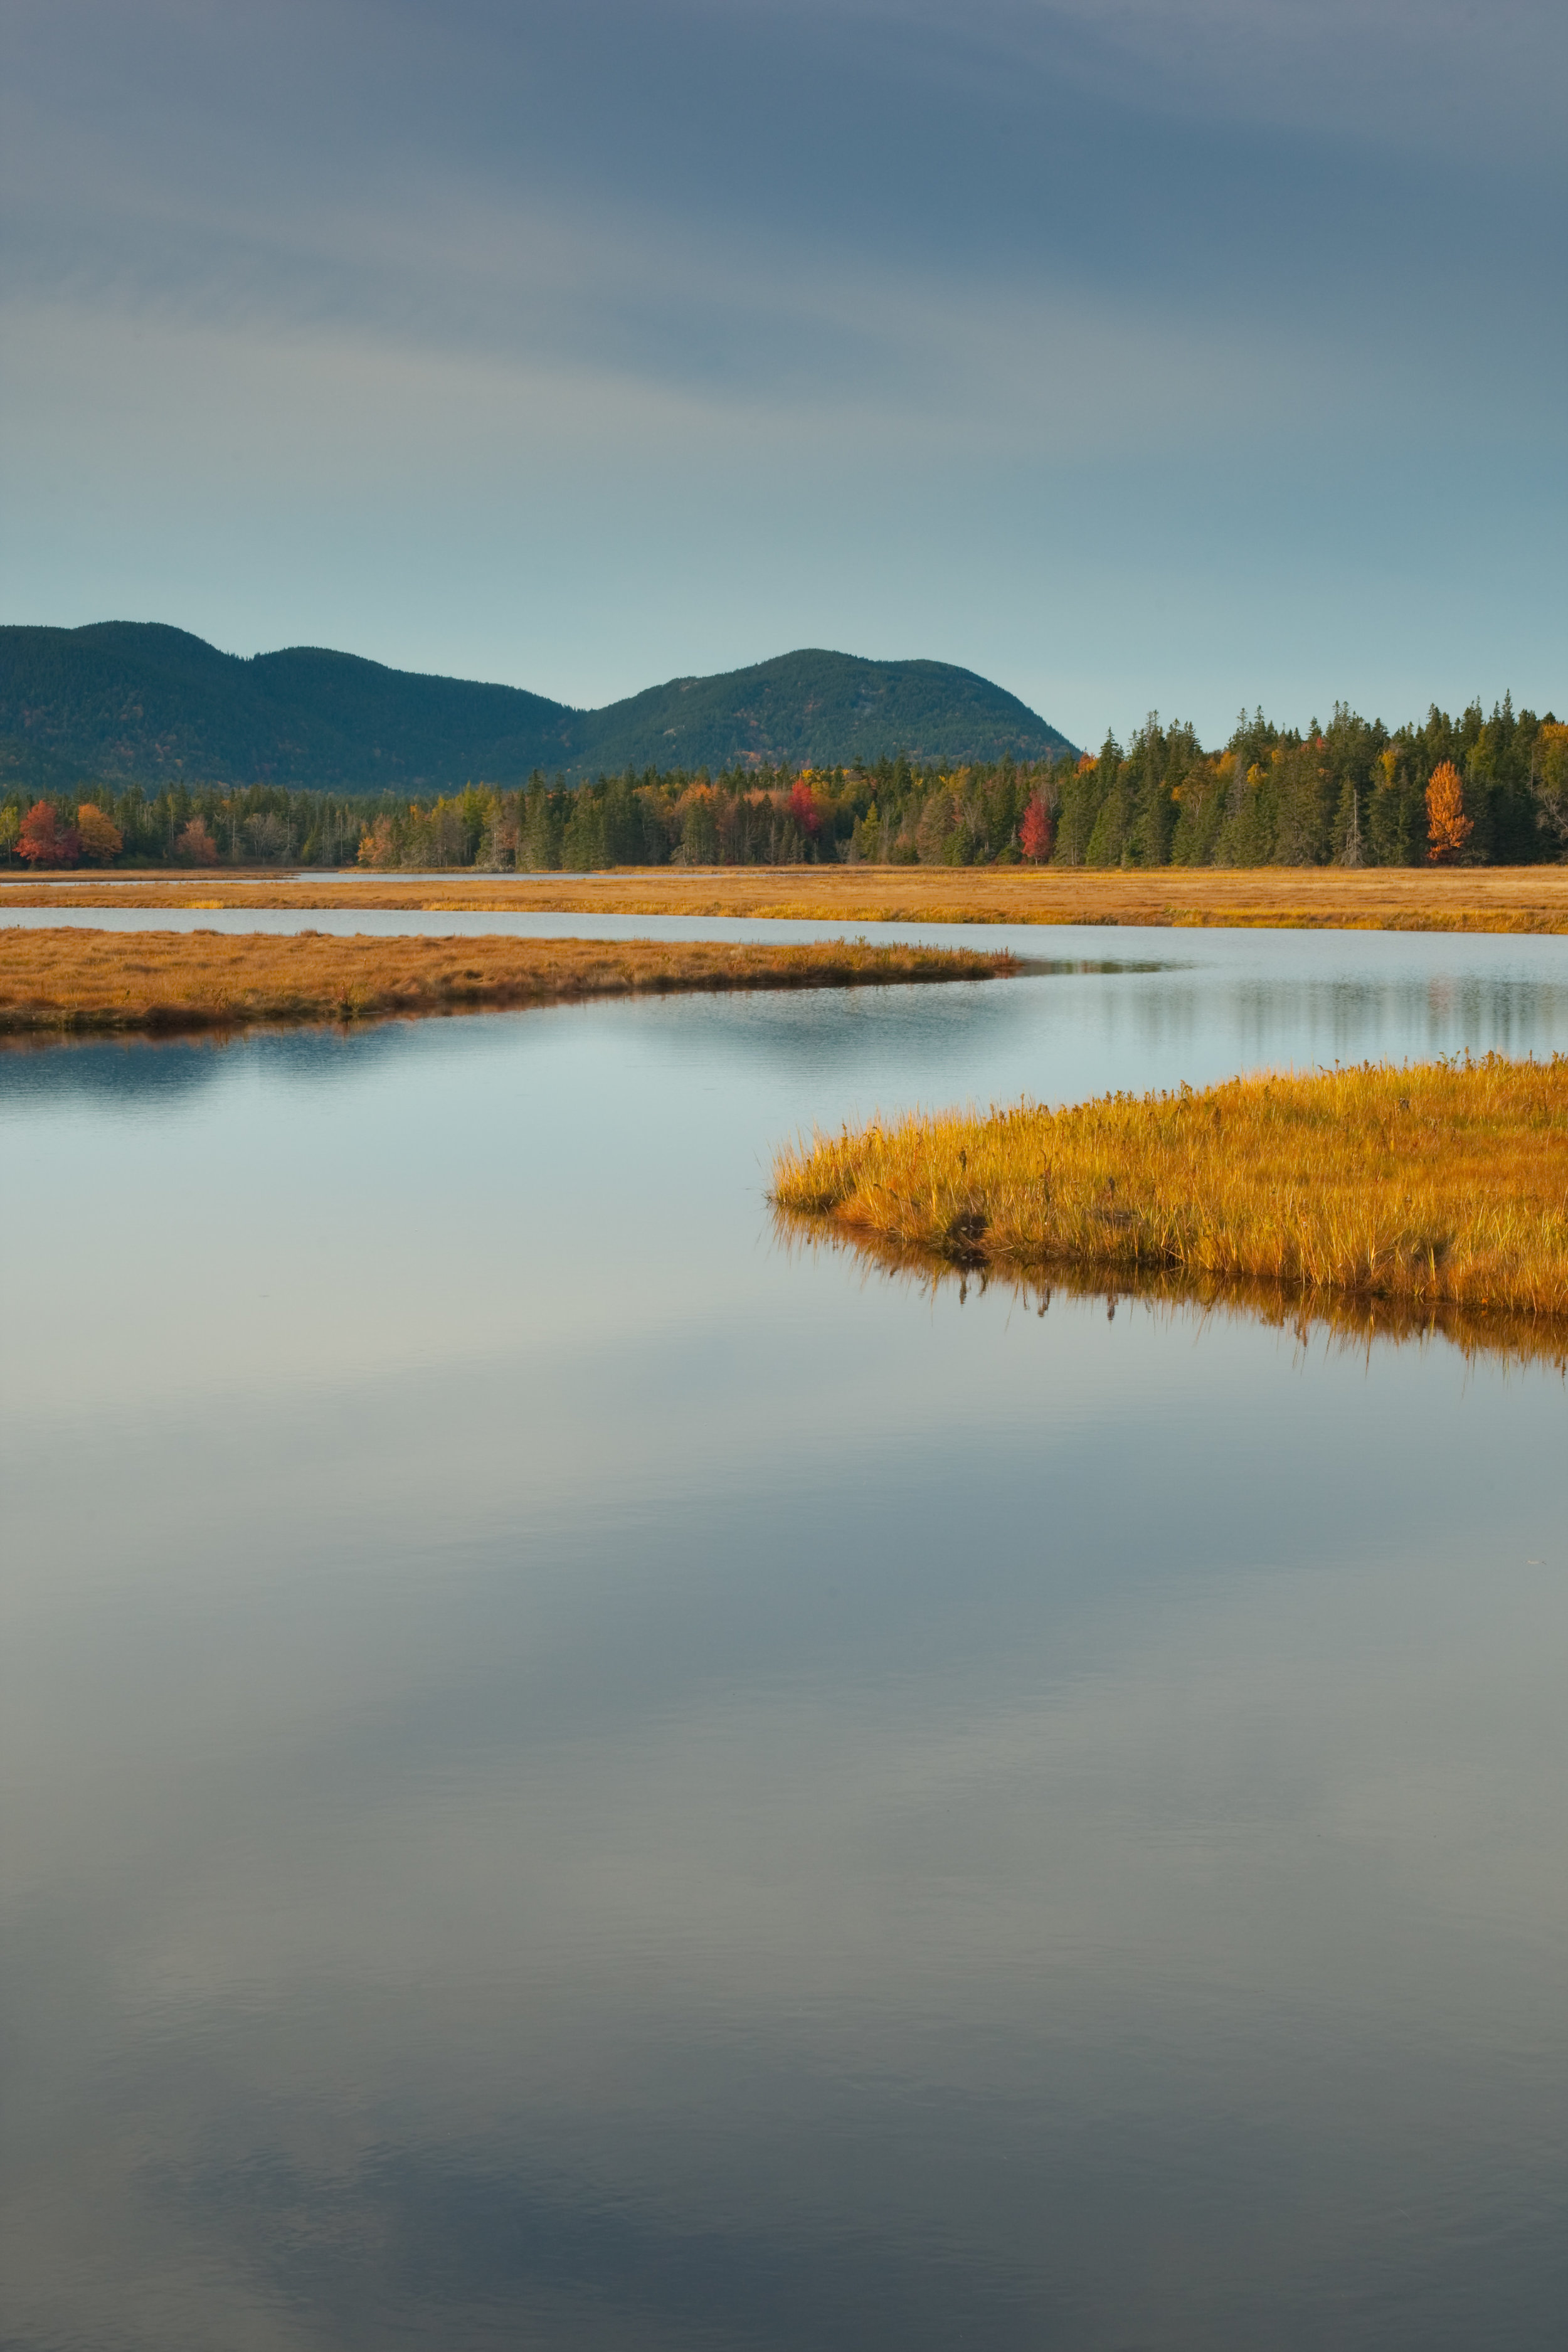 Bass Harbor Marsh (looking towards Bernard Mountain and Mansell